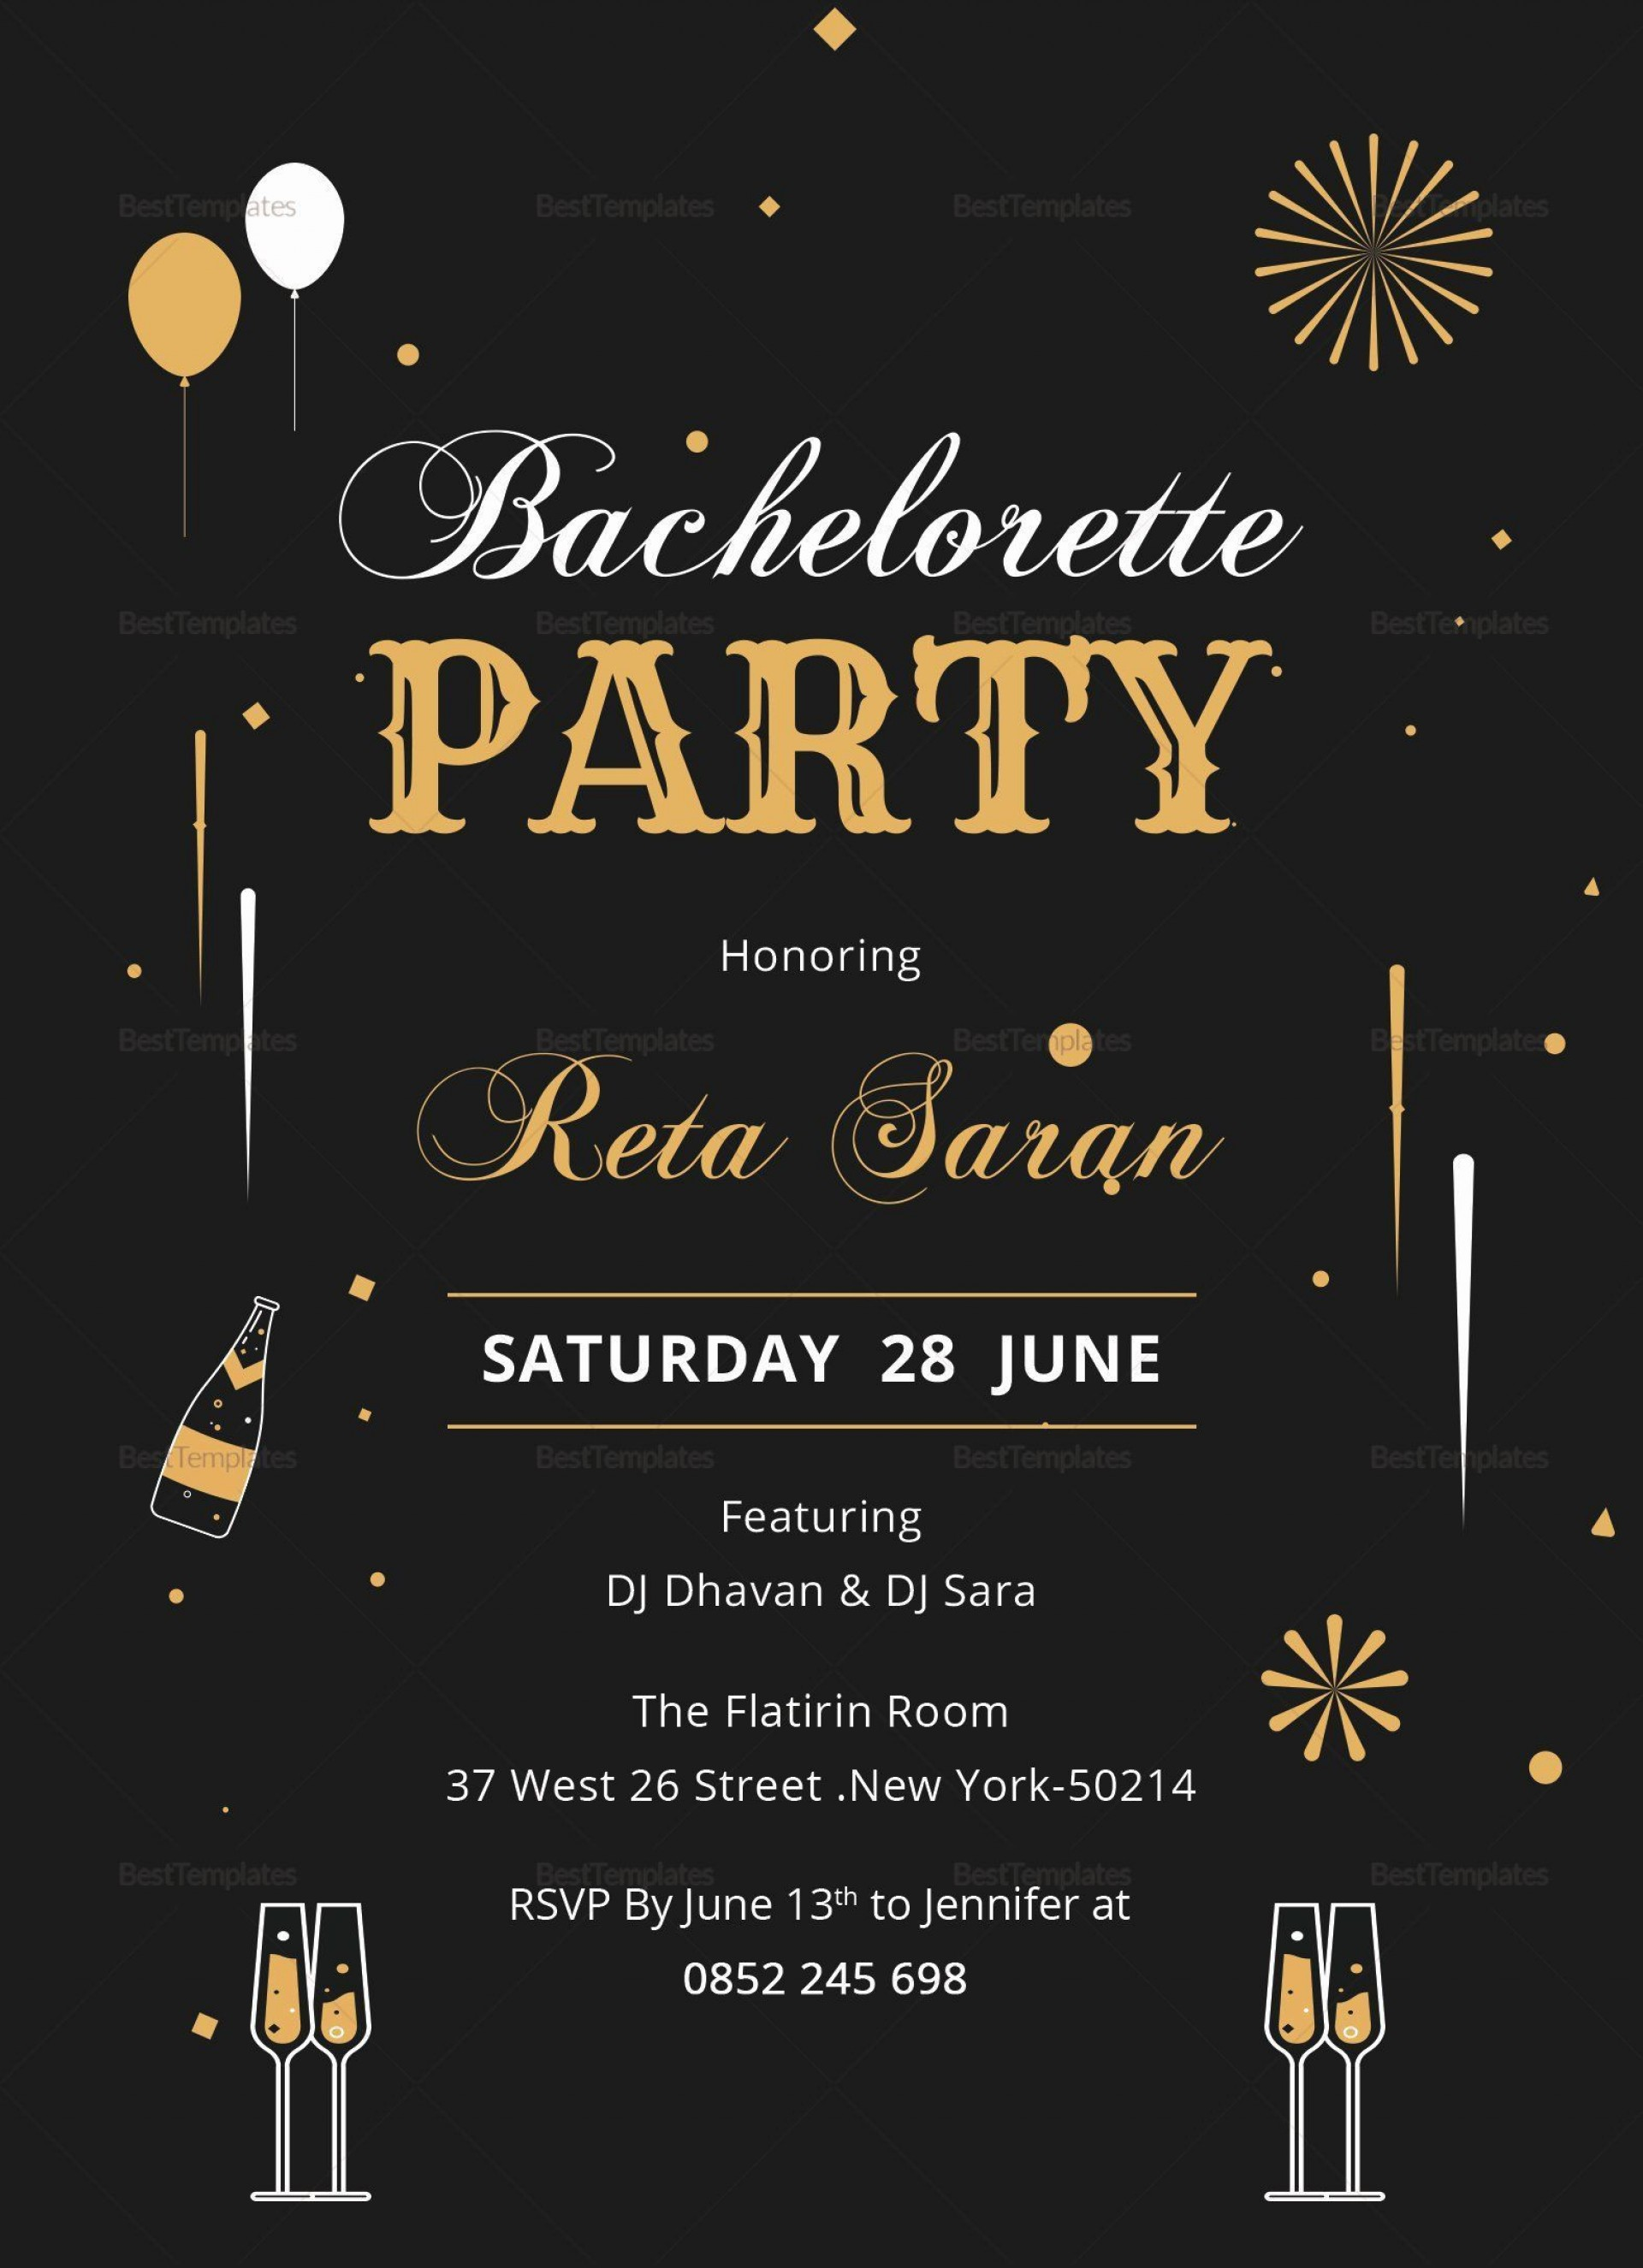 000 Stunning Bachelorette Party Invitation Template Word Free Photo 1920